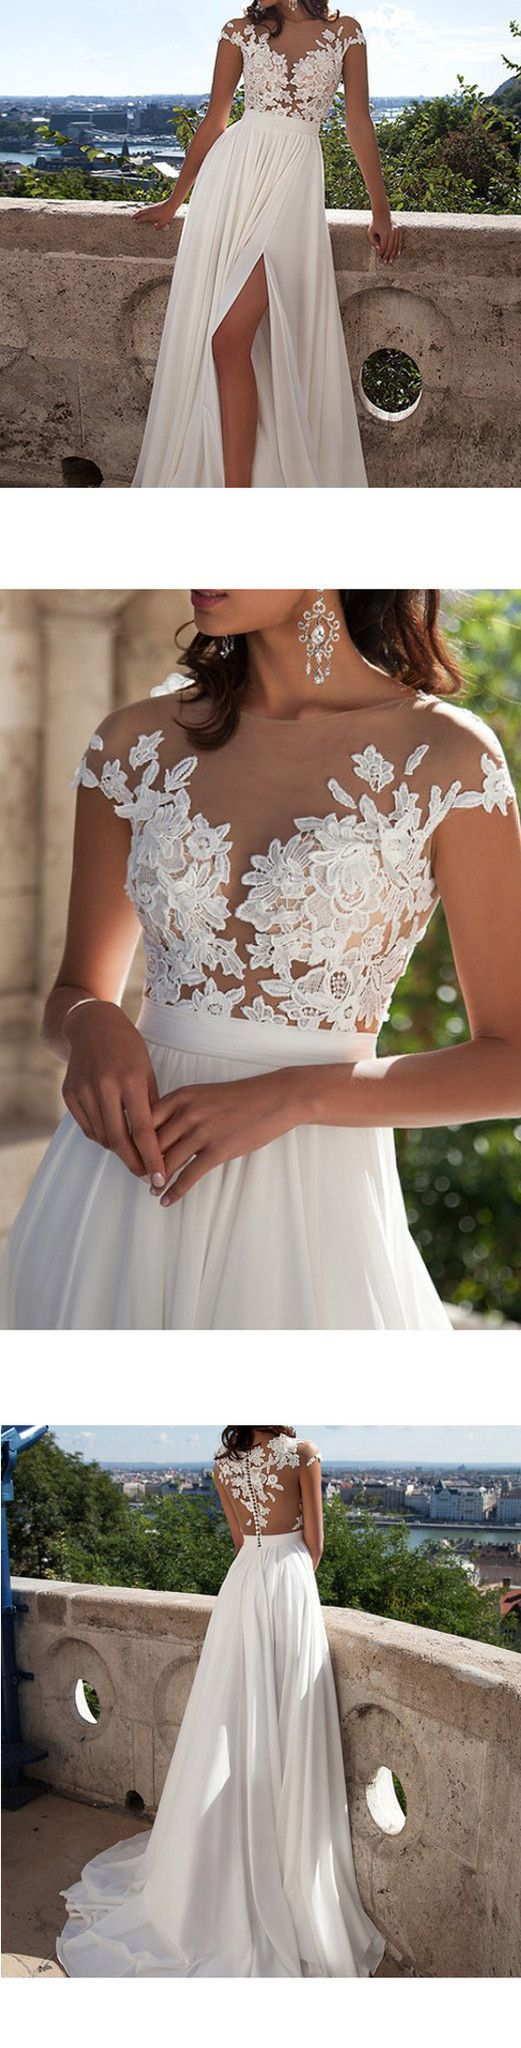 Long A-Line White Lace Prom Dress With Appliques, Side Slit Sexy Wedding Party Dress, WD0124